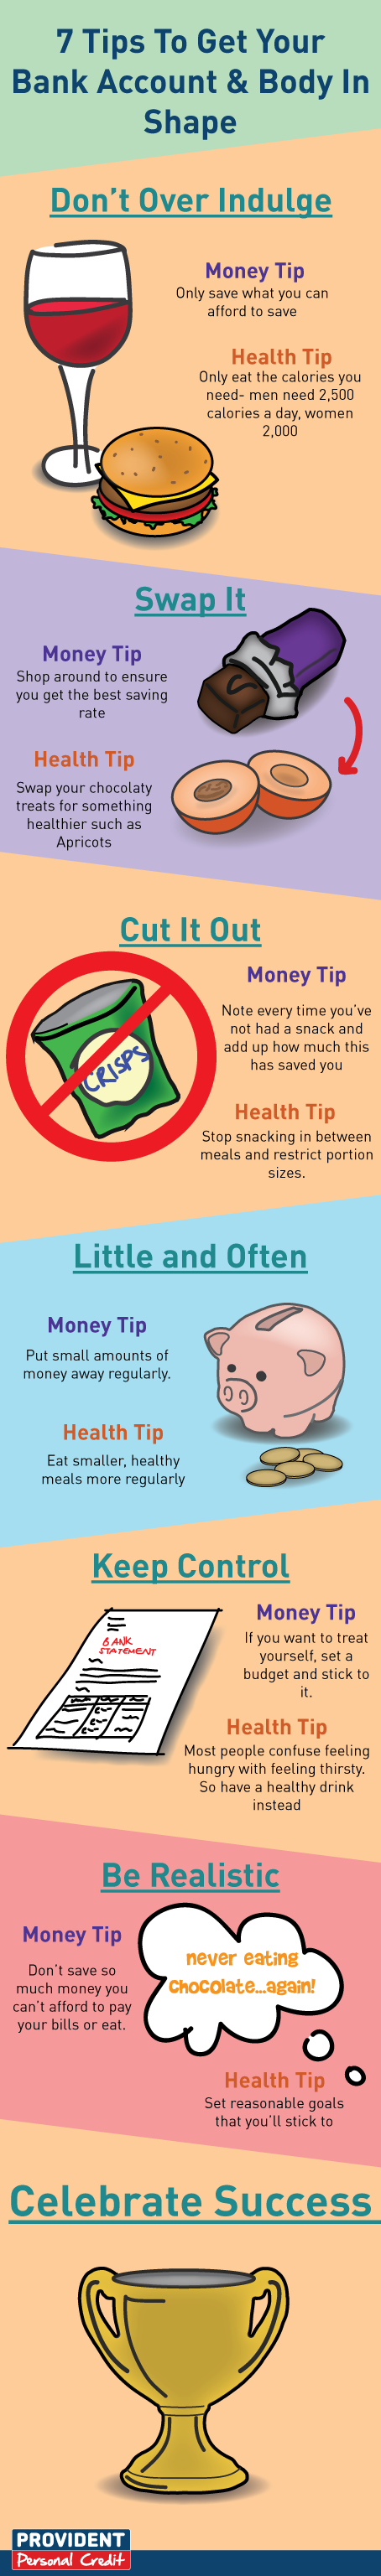 Infographic on how to keep your body and bank balance in shape